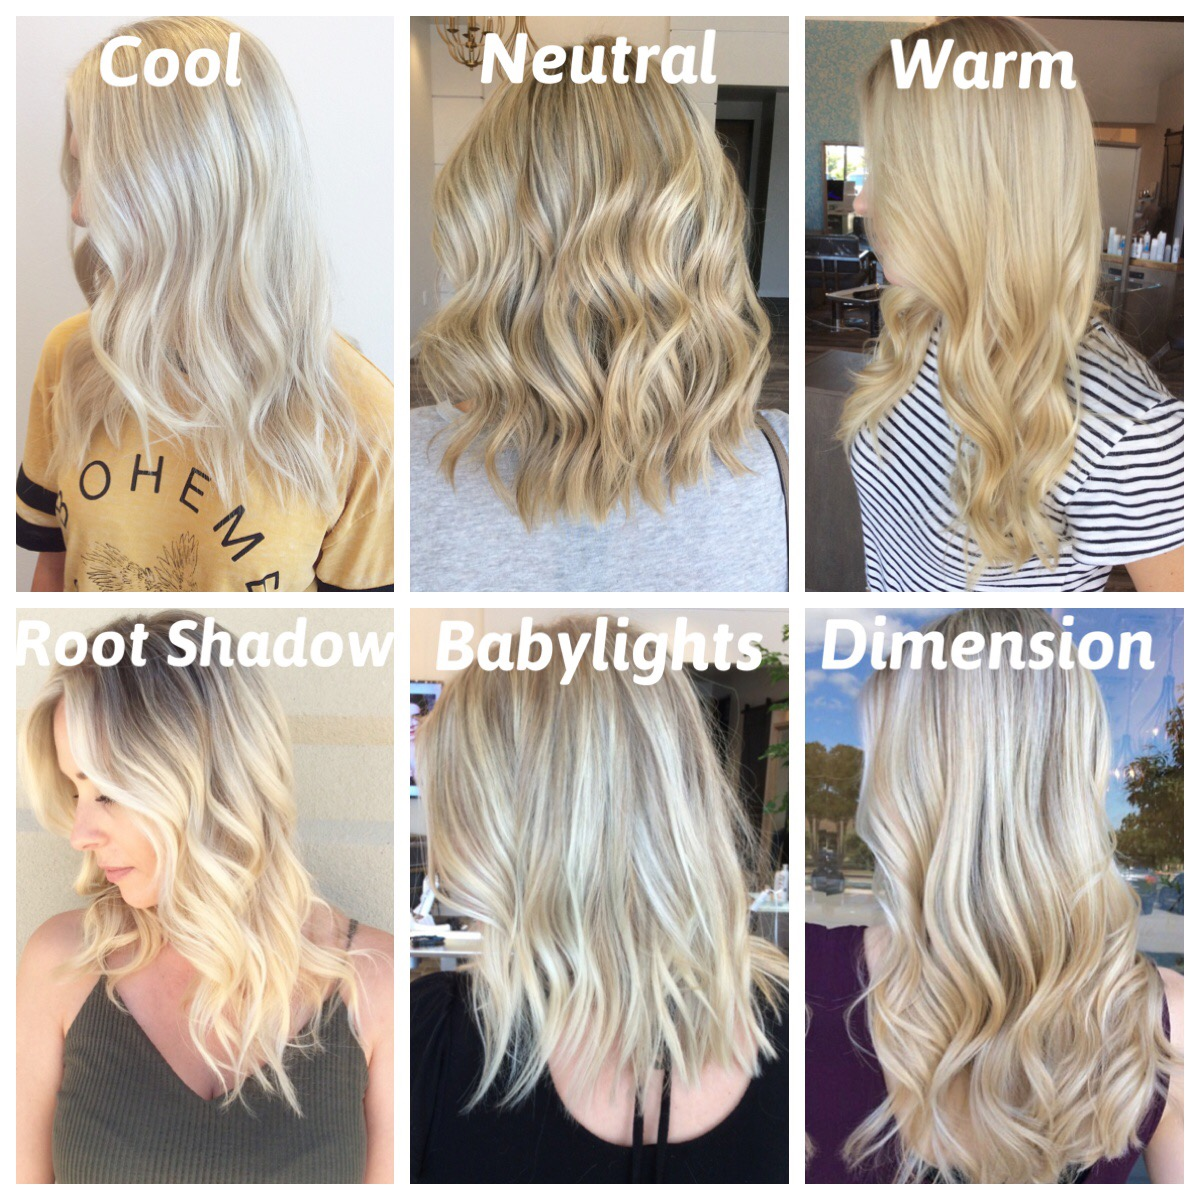 What To Ask Your Stylist For To Get The Color You Want Blonde Edition Beauty And Lifestyle Blog Ally Samouce